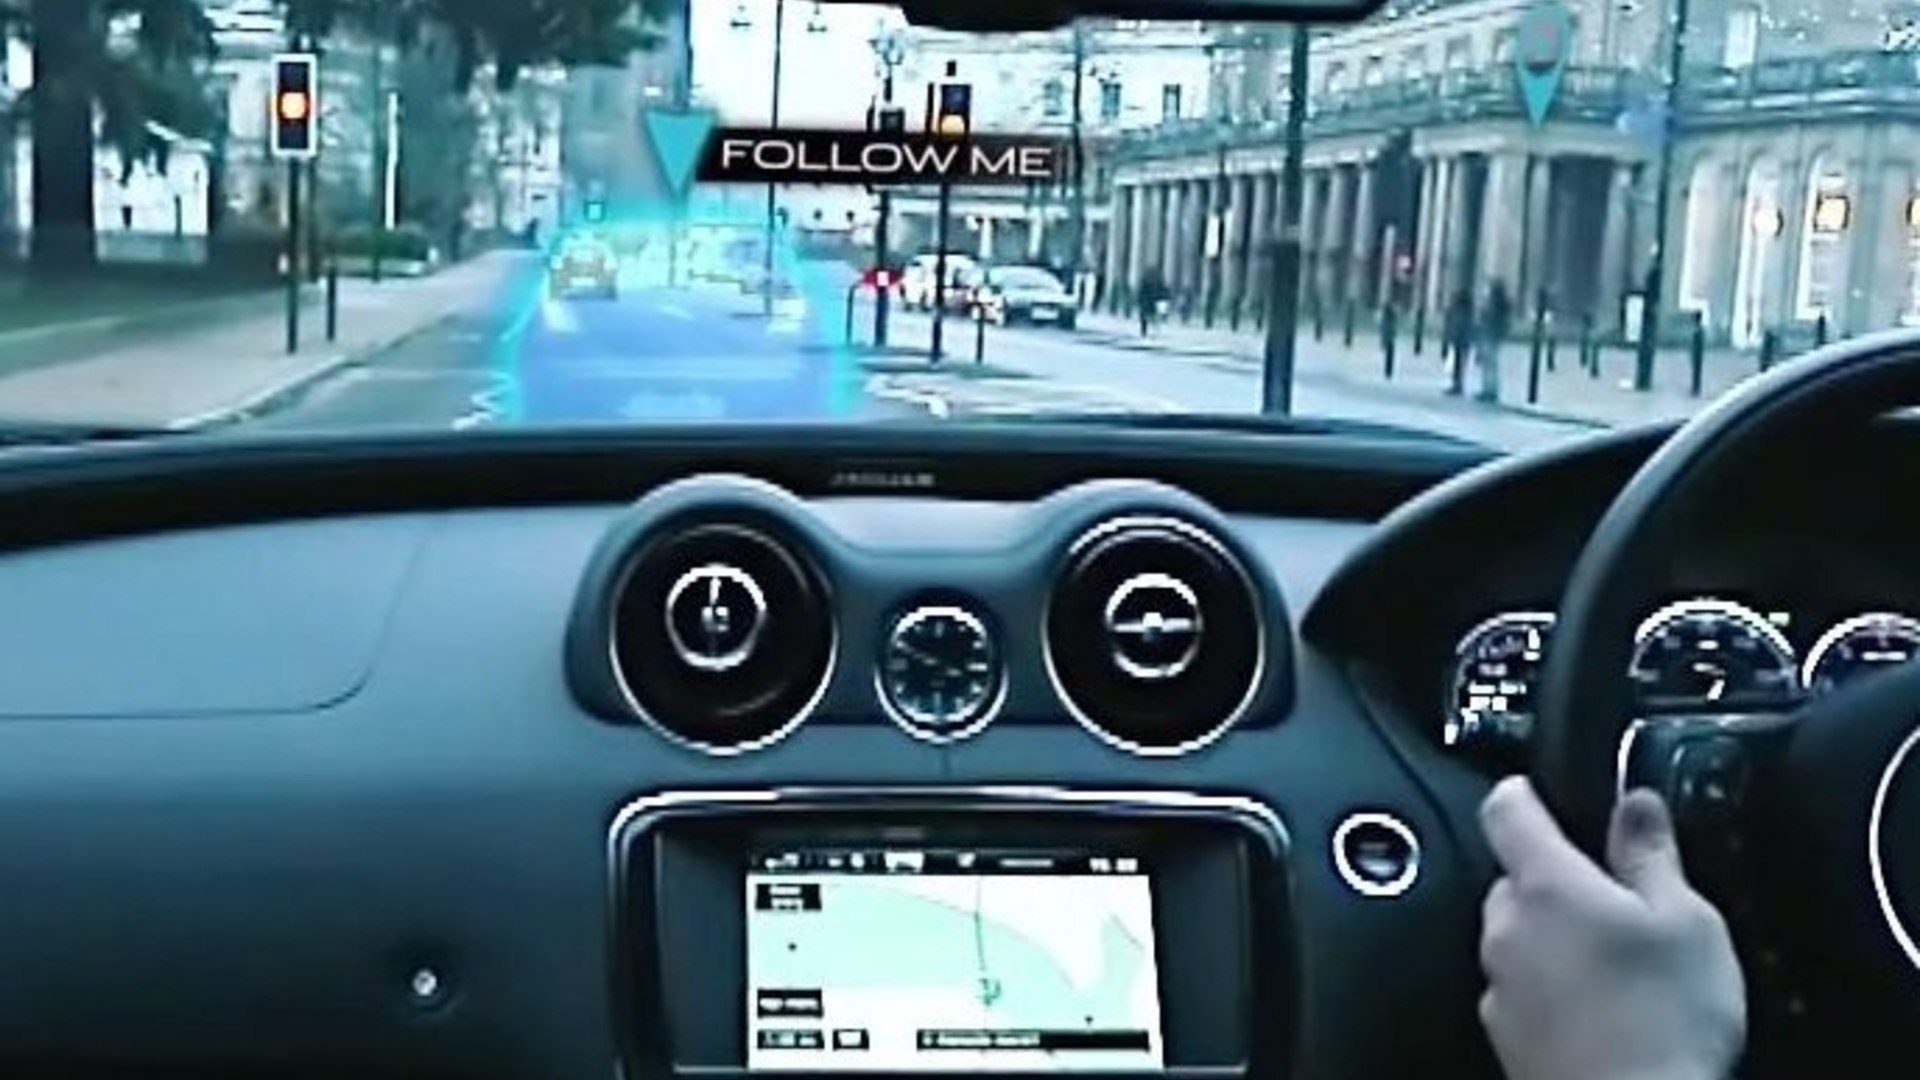 Ghost cars may soon become a reality